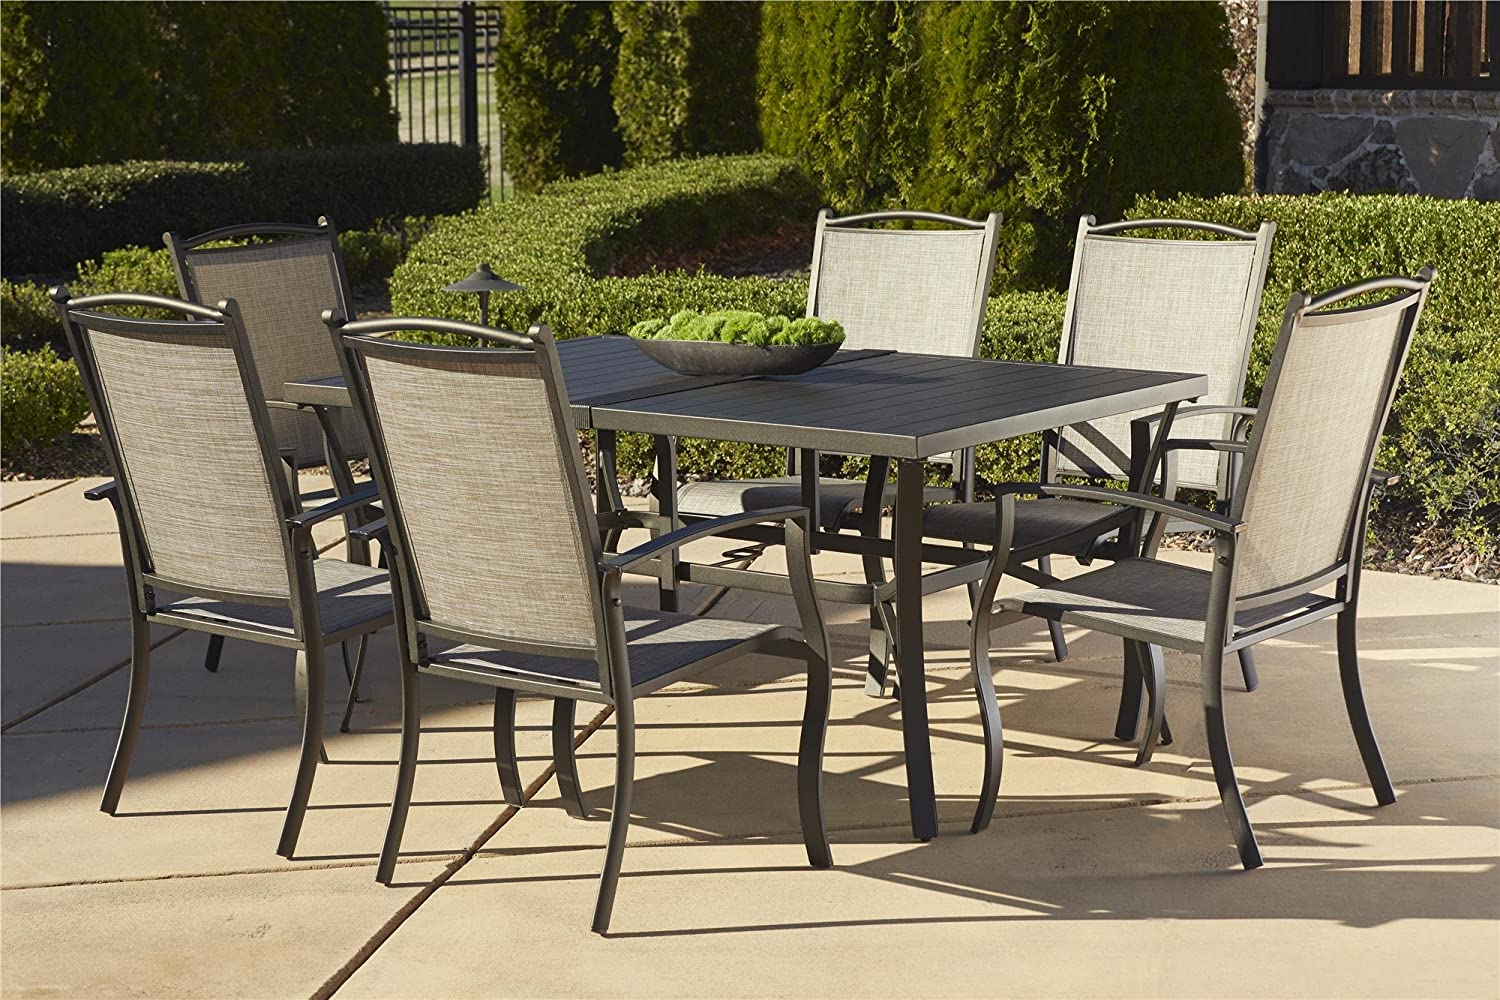 Image result for Dining Sets for patio